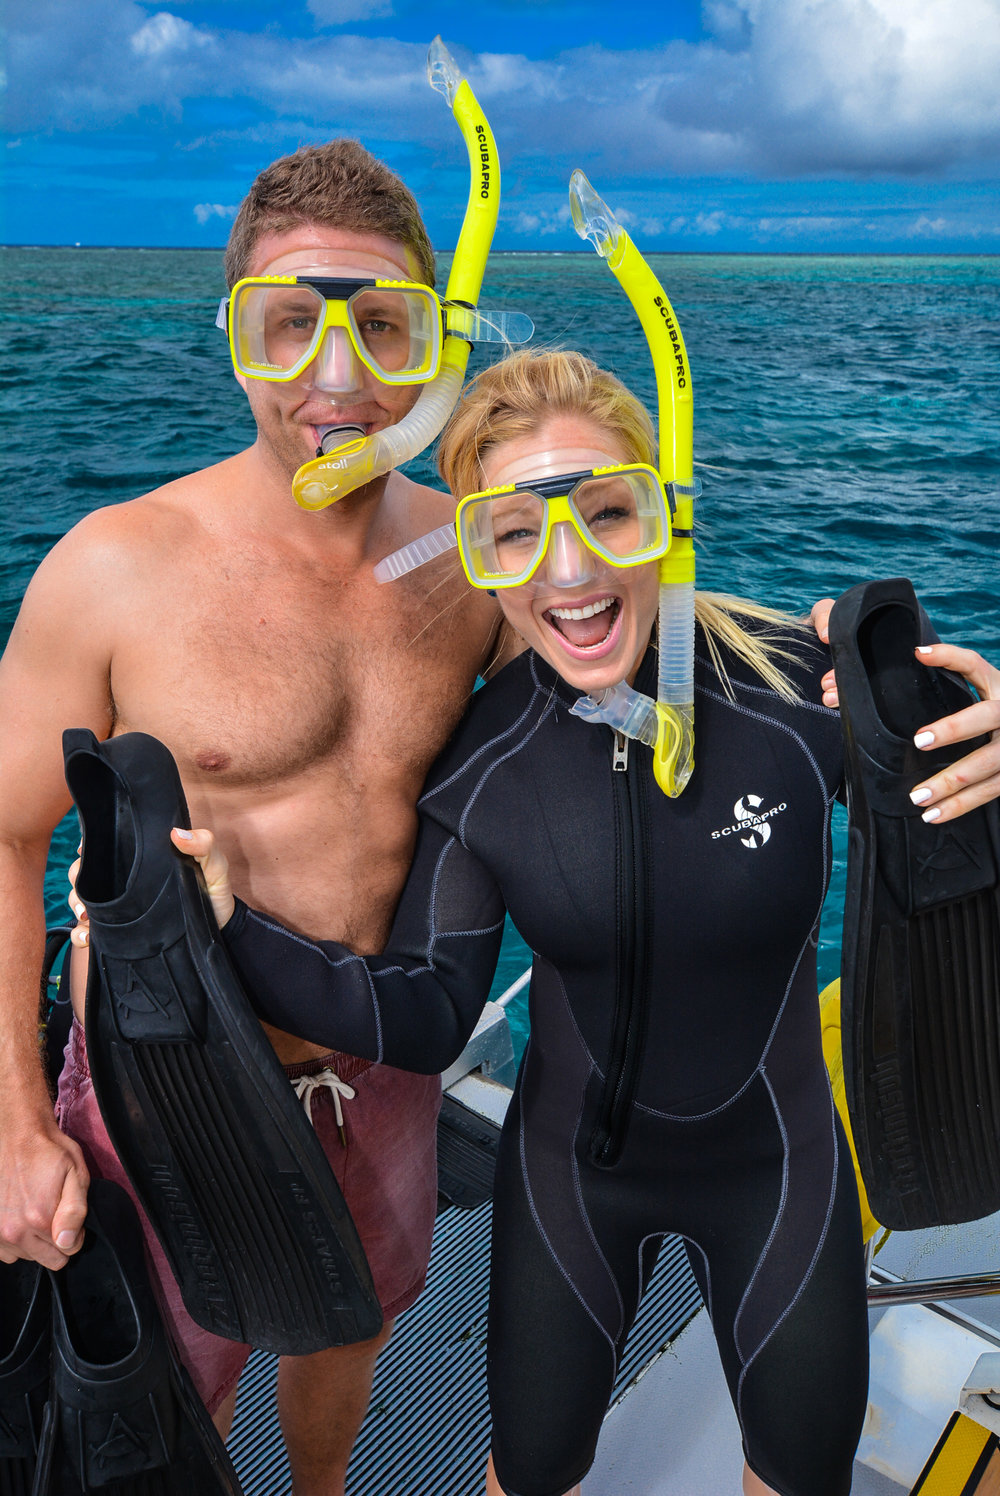 Anna Kooiman AnnaKooiman.com fitness travel lifestyle Great Barrier Reef